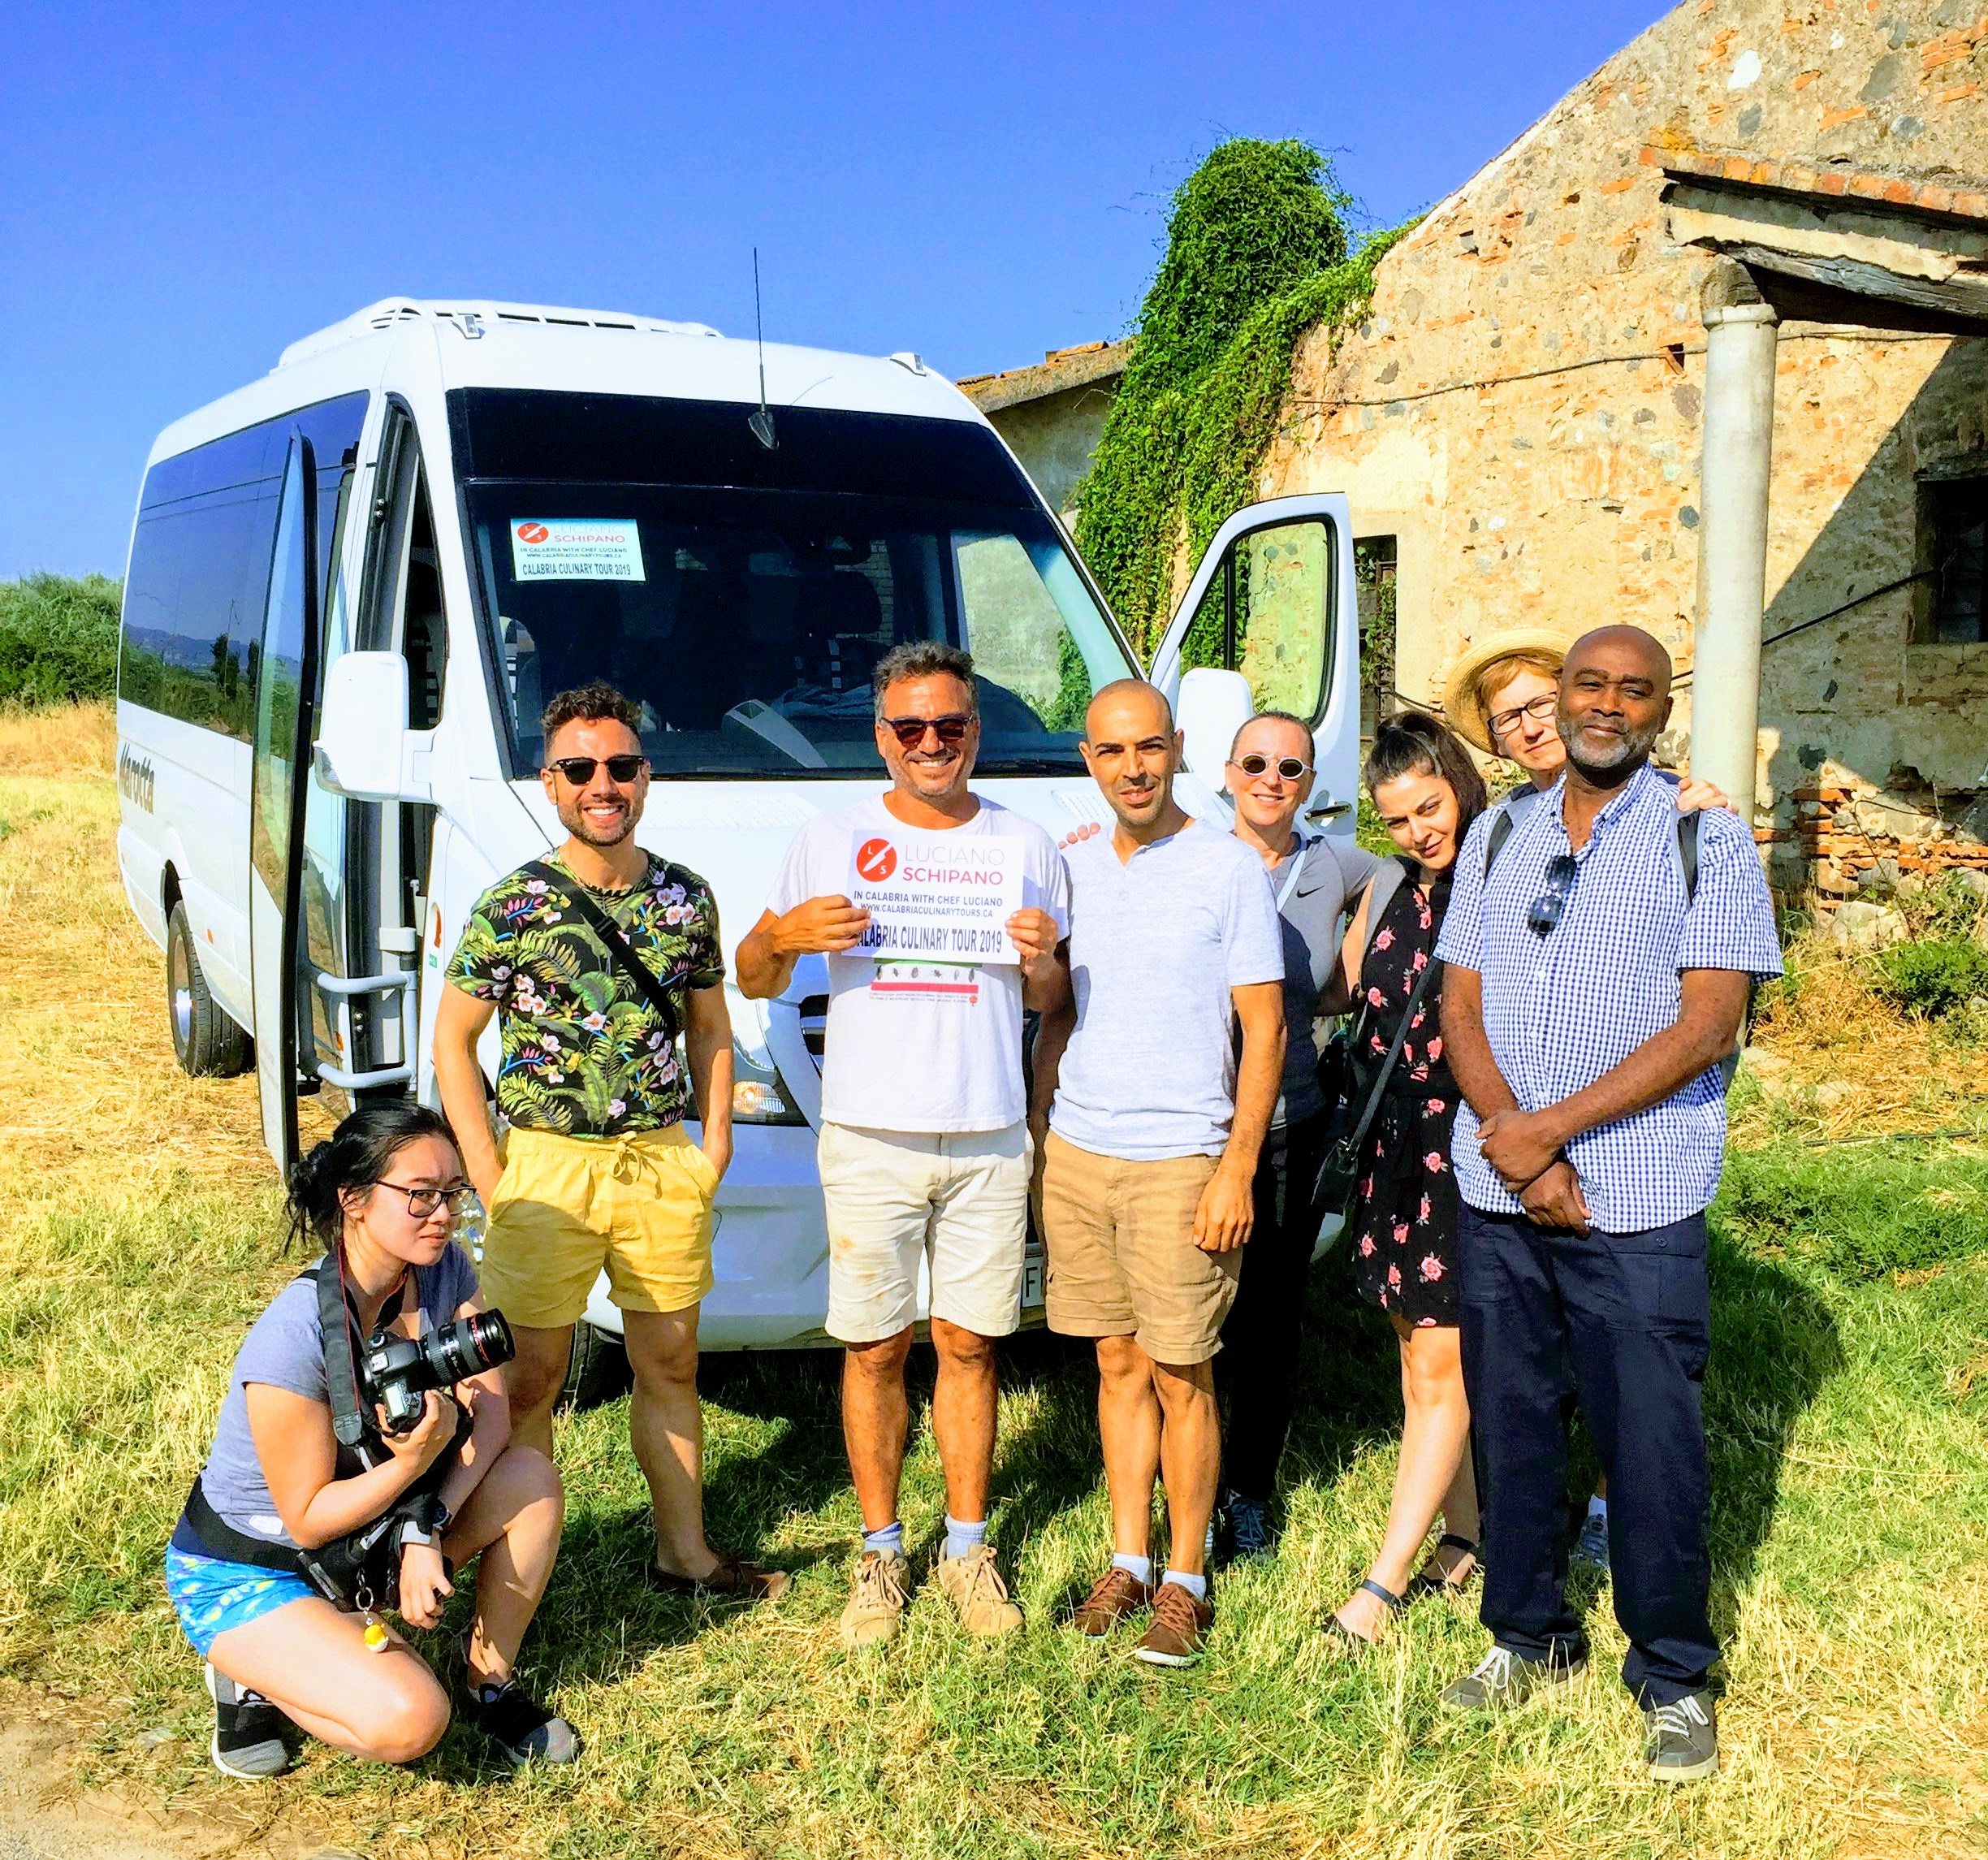 Calabria culinary tour group excursion